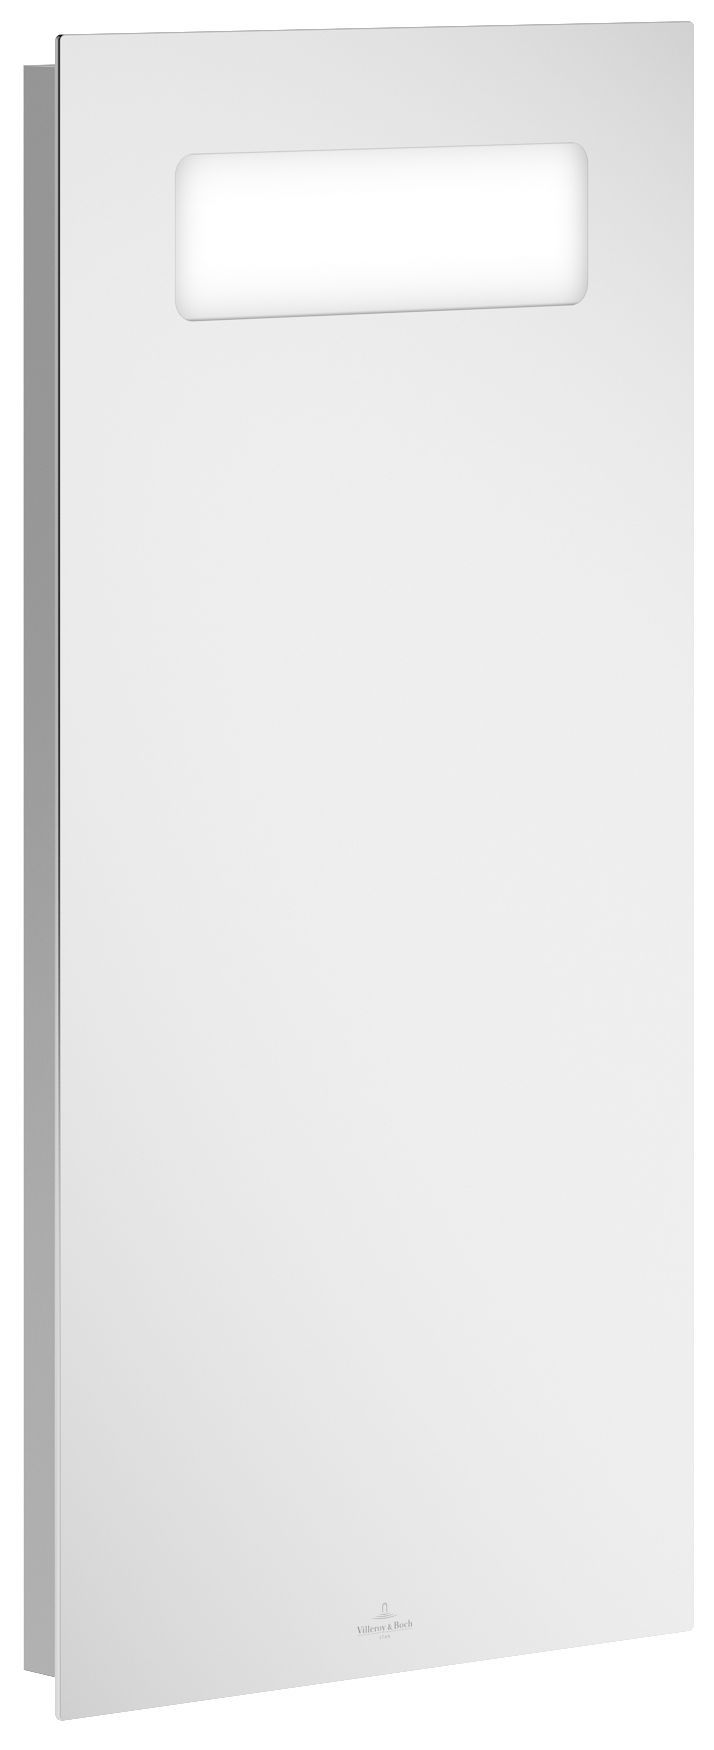 Villeroy & Boch More to See 14 Spiegel mit LED-Beleuchtung B: 50 cm A4295000